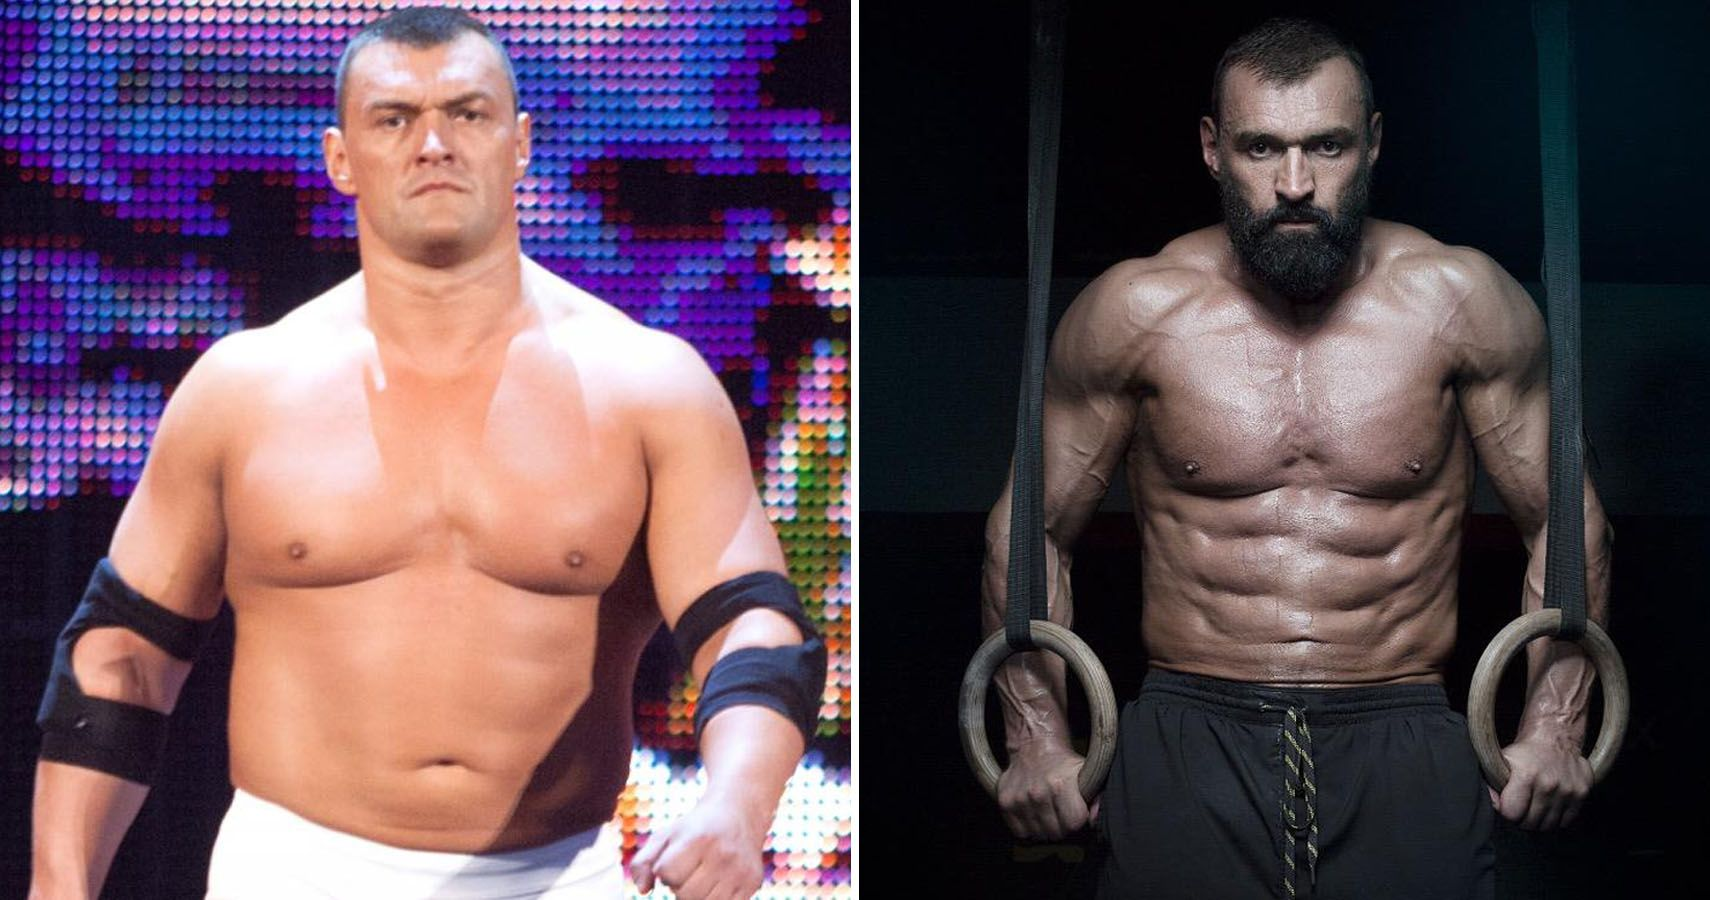 15 Wrestlers Who Look Better Now Than They Did In Their Peak